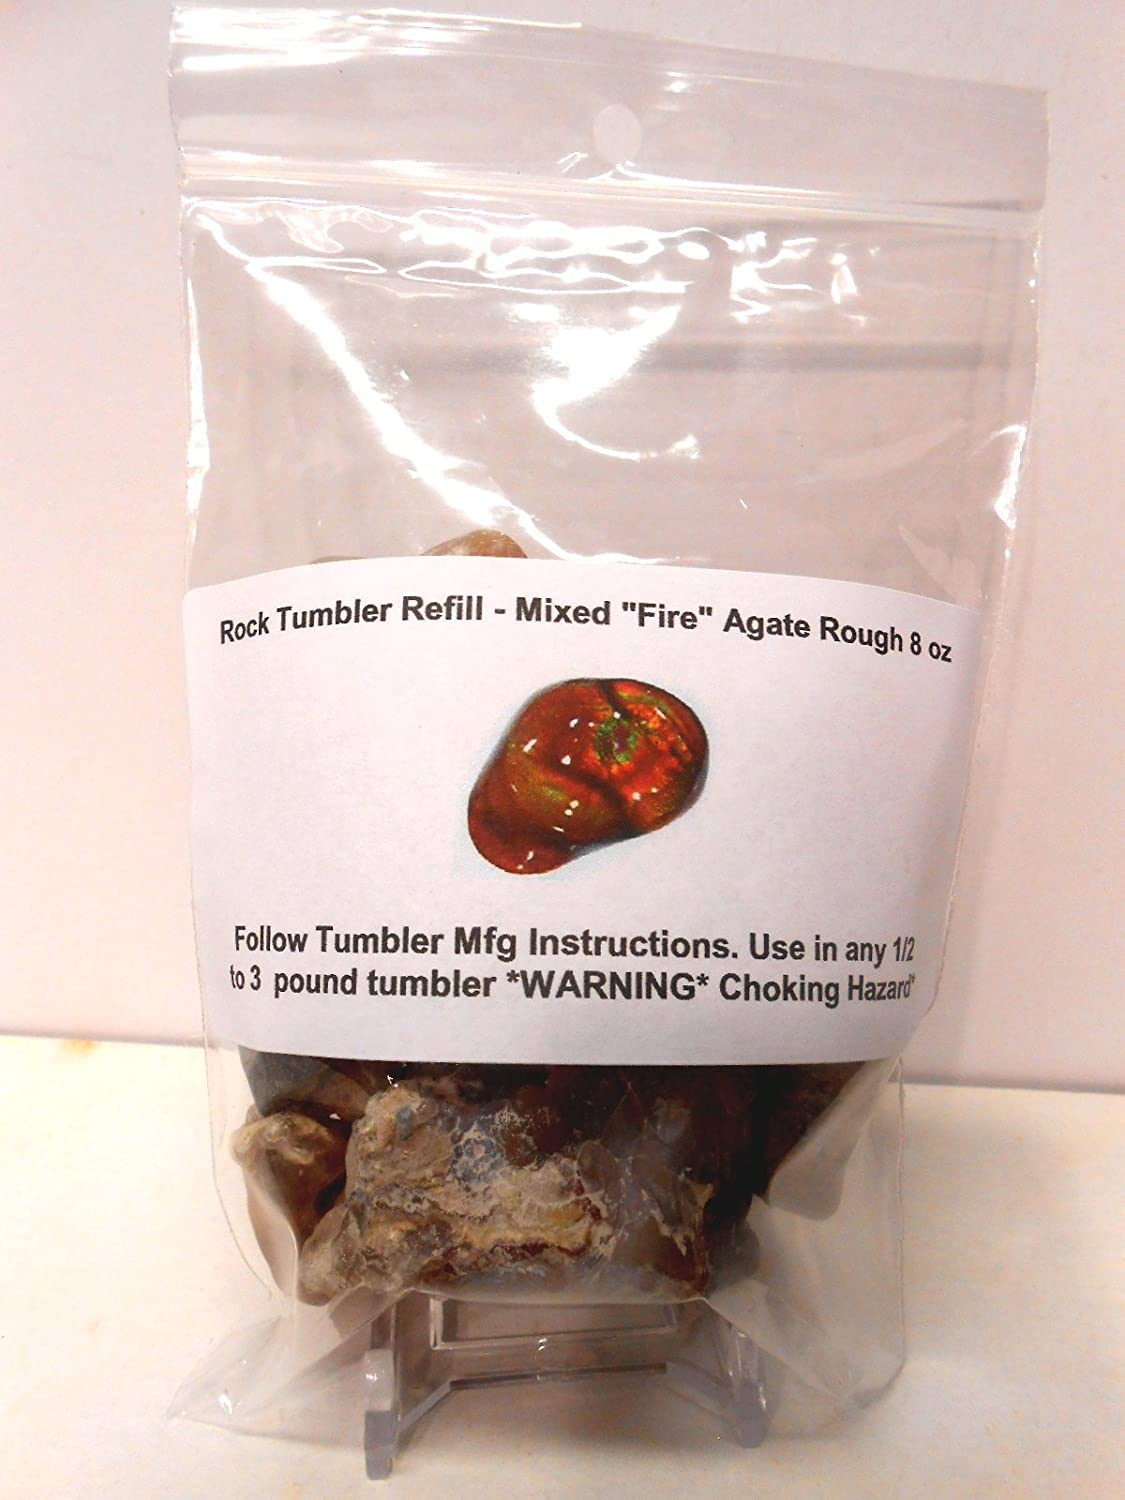 Rock Tumbler Gem Refill Kit Mixed Fire Agate Rough From The Mines of Calvillo,(Aguascalientes) Mexico, Deer Creek & Slaughter Mt. Arizona. 8 oz Rockhound's 1st Choice